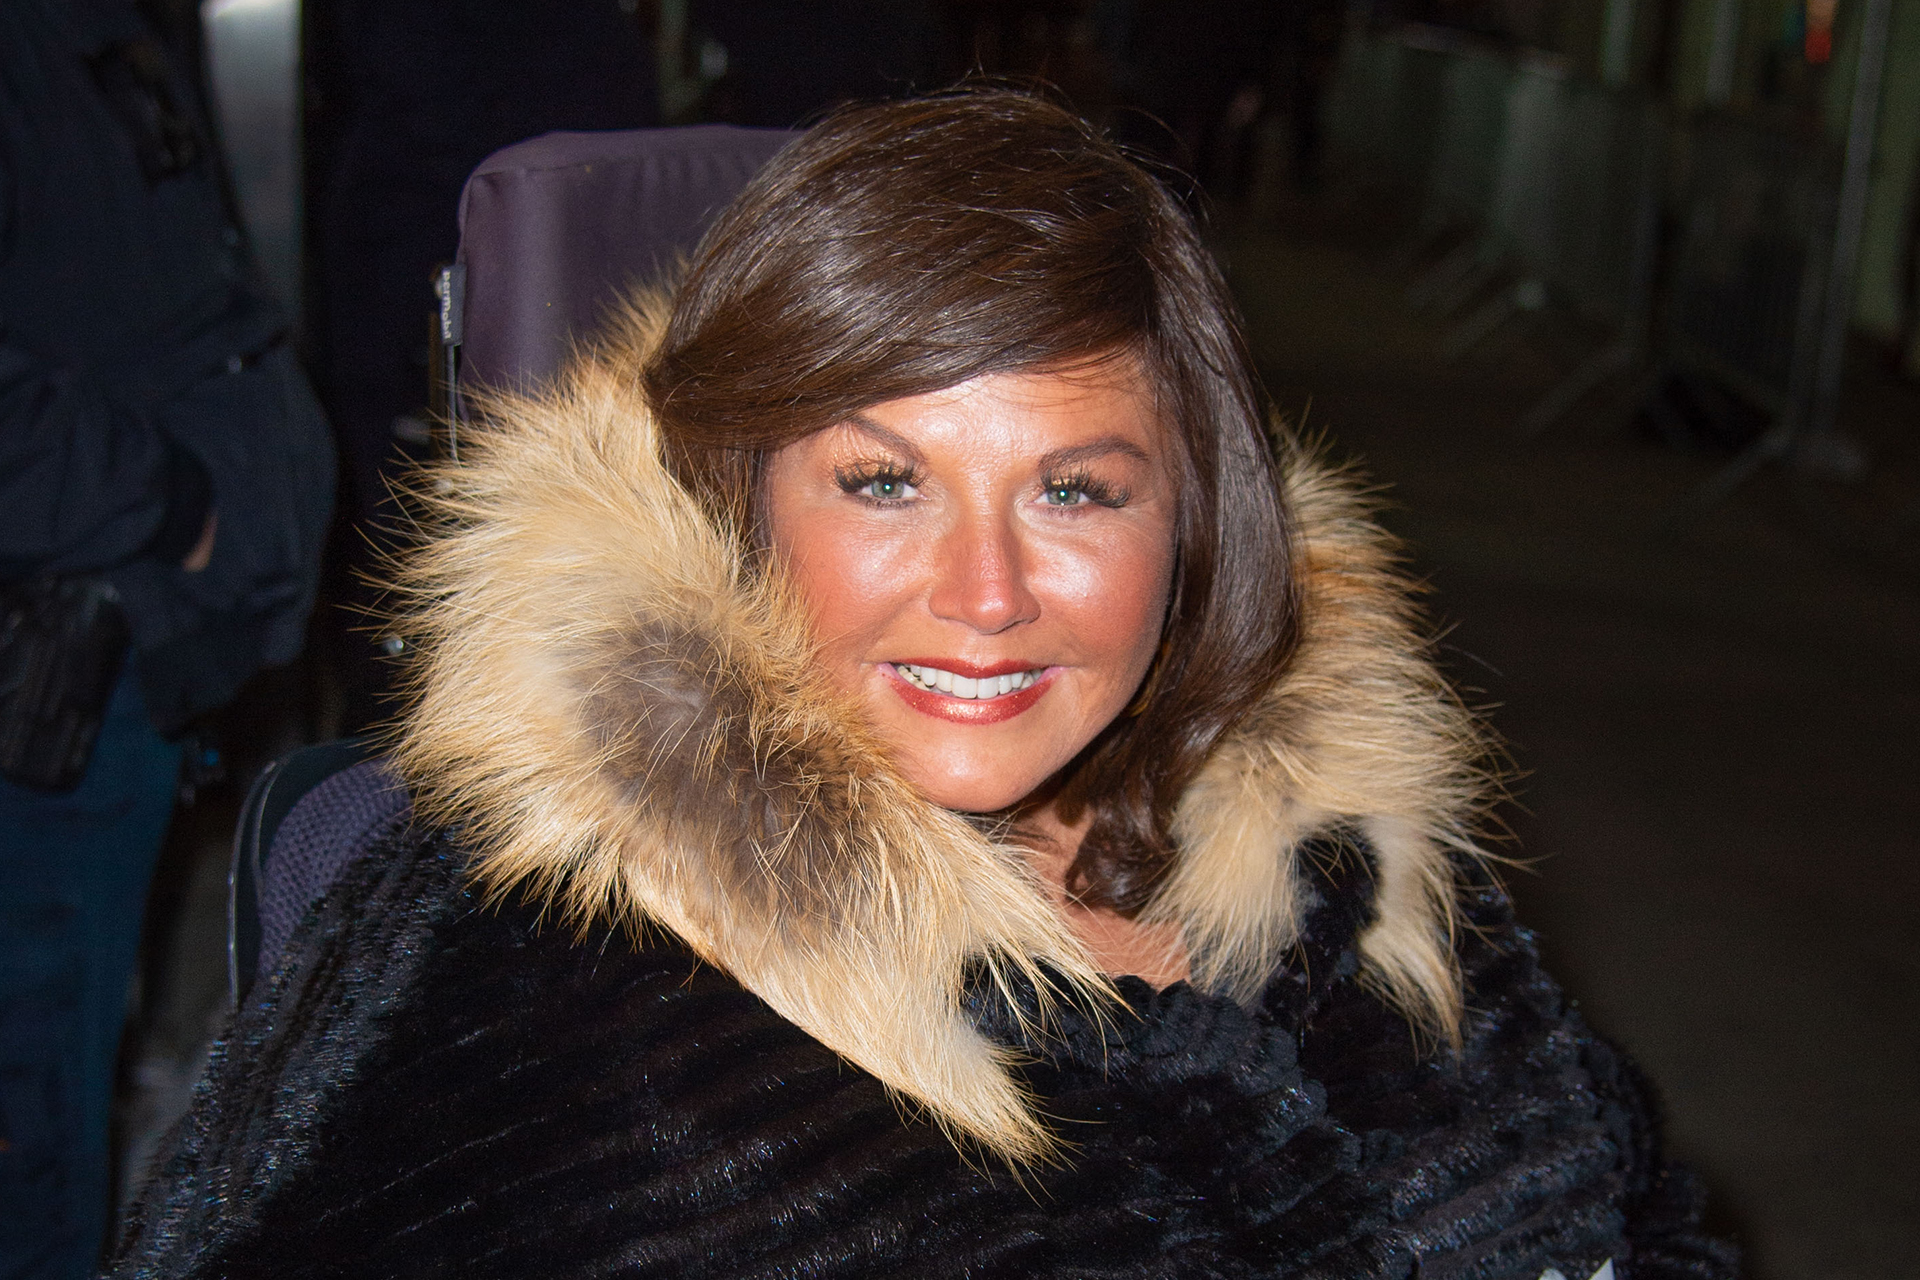 People Now: Abby Lee Miller Apologizes For 'Harmful' Remarks After Being Accused of Being 'Racist' - Watch the Full Episode